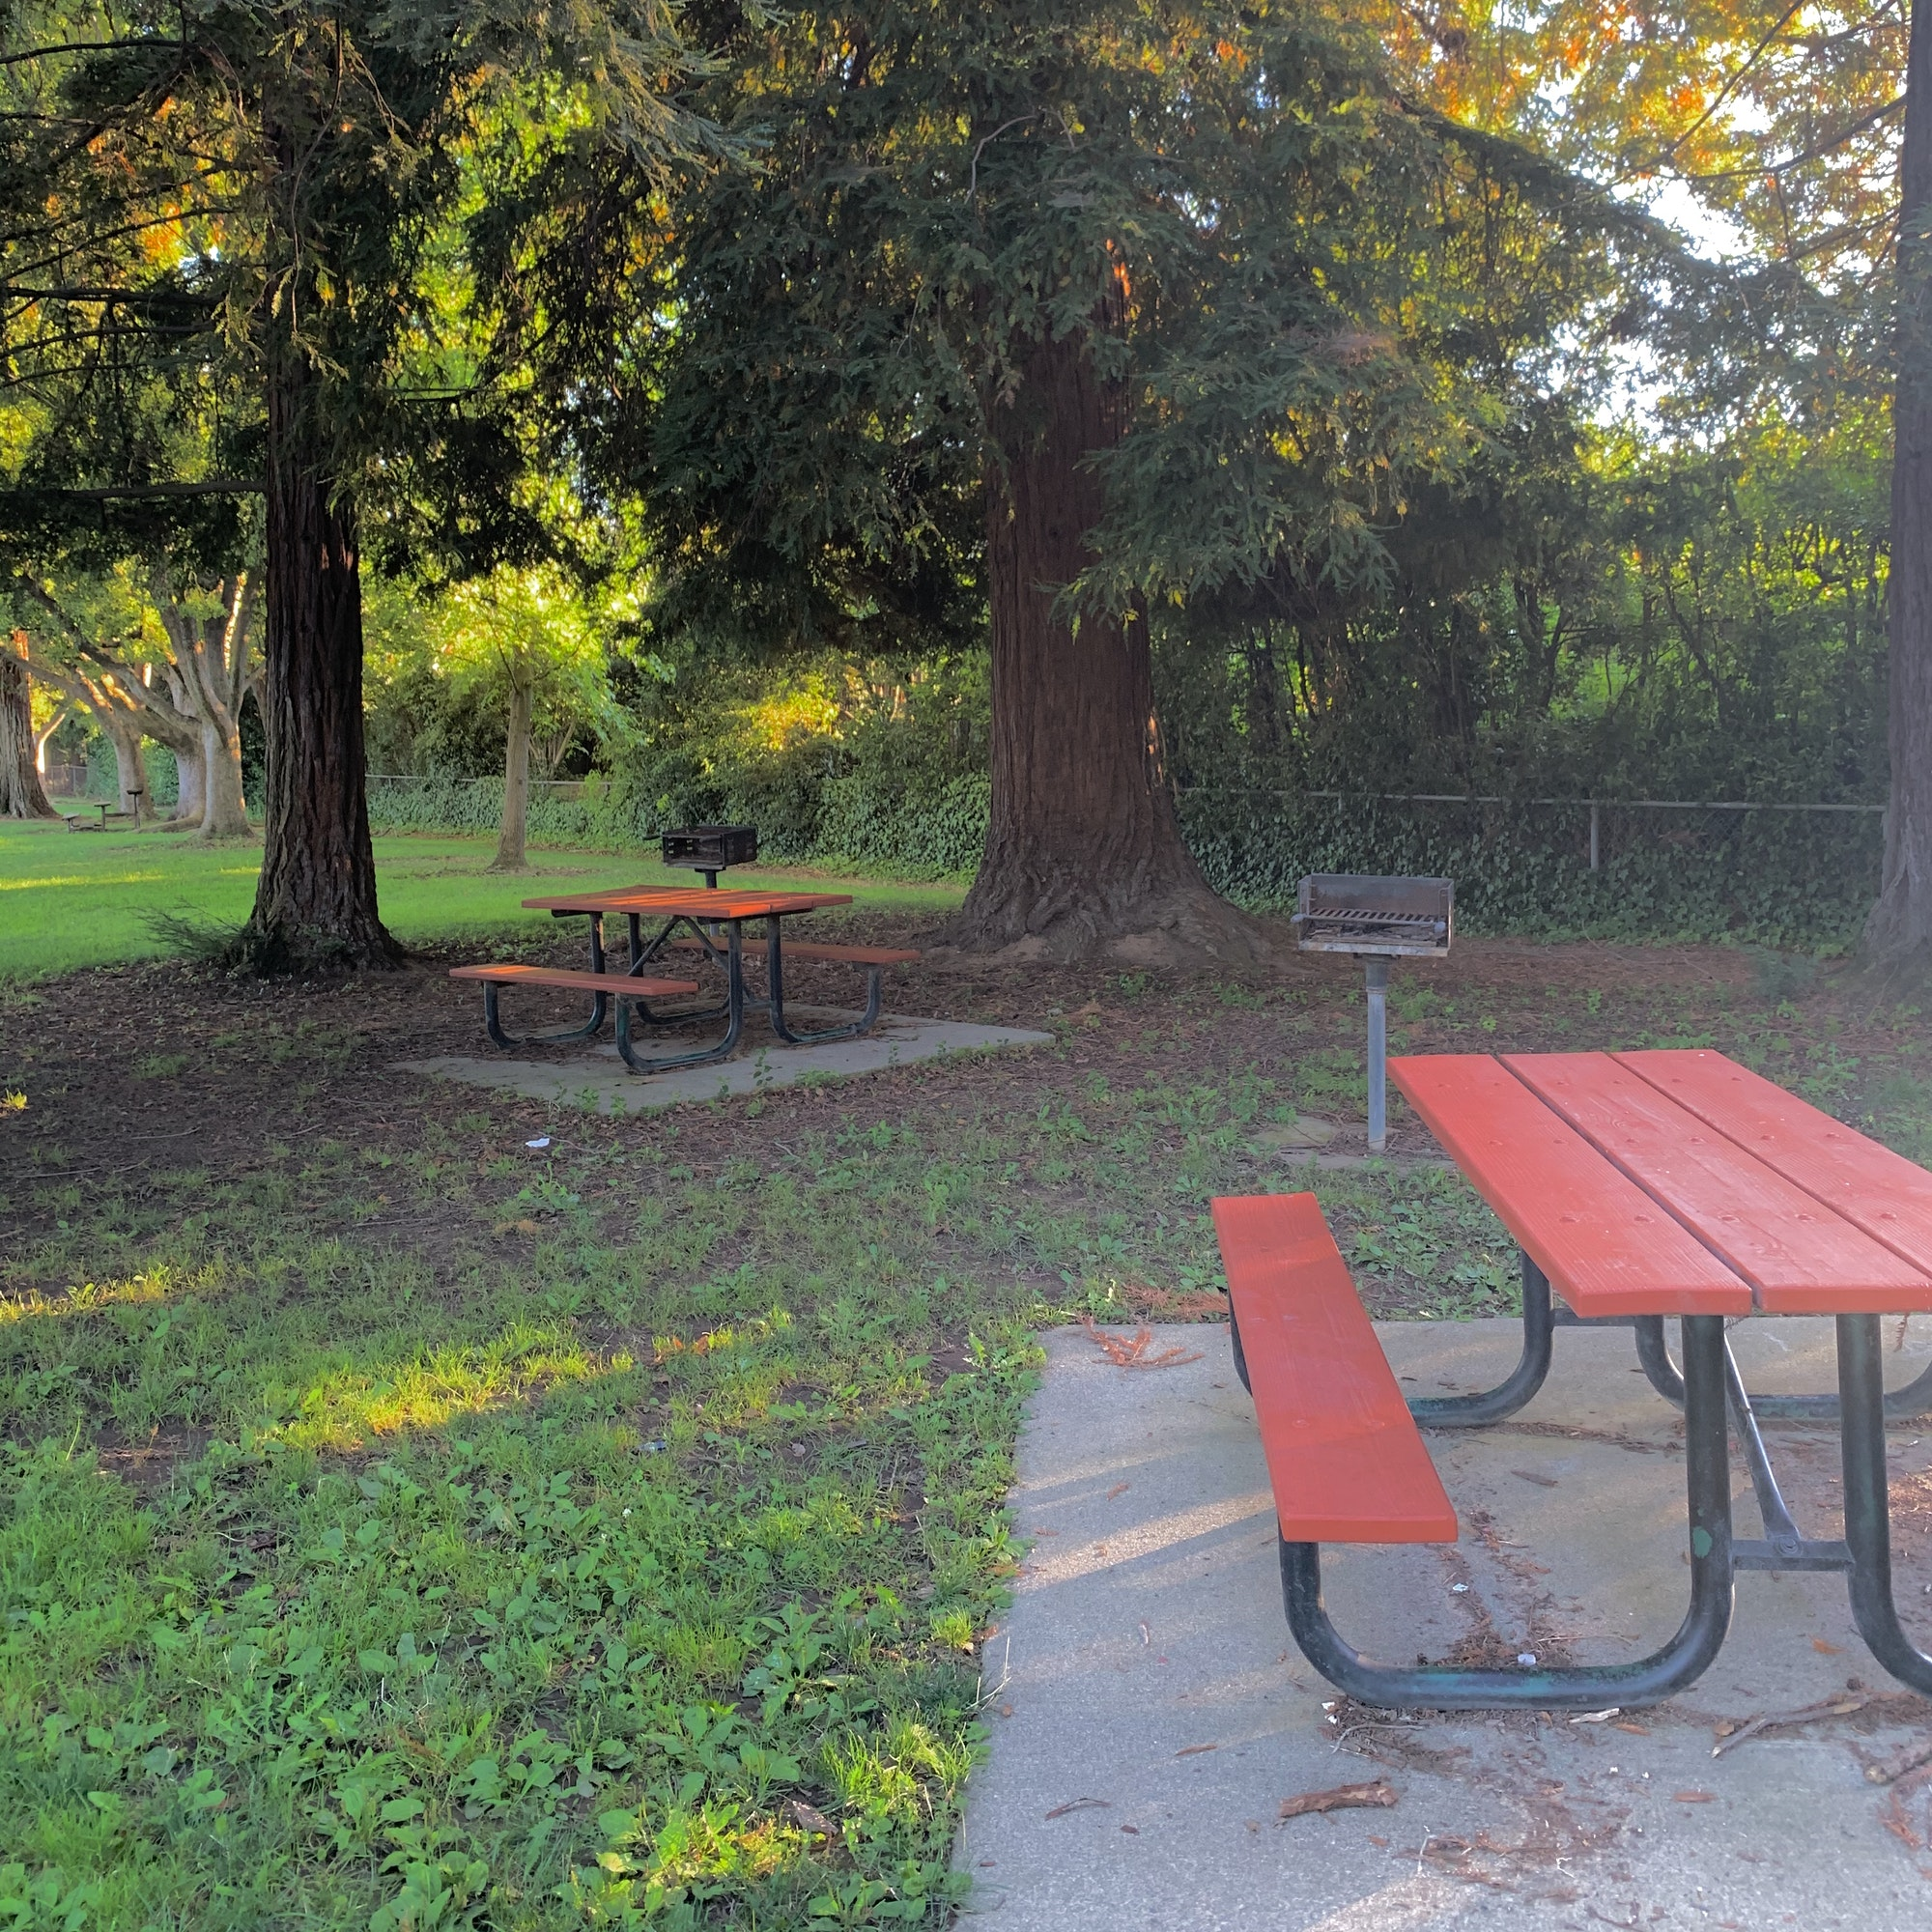 May contain: furniture, bench, park bench, tree, and plant